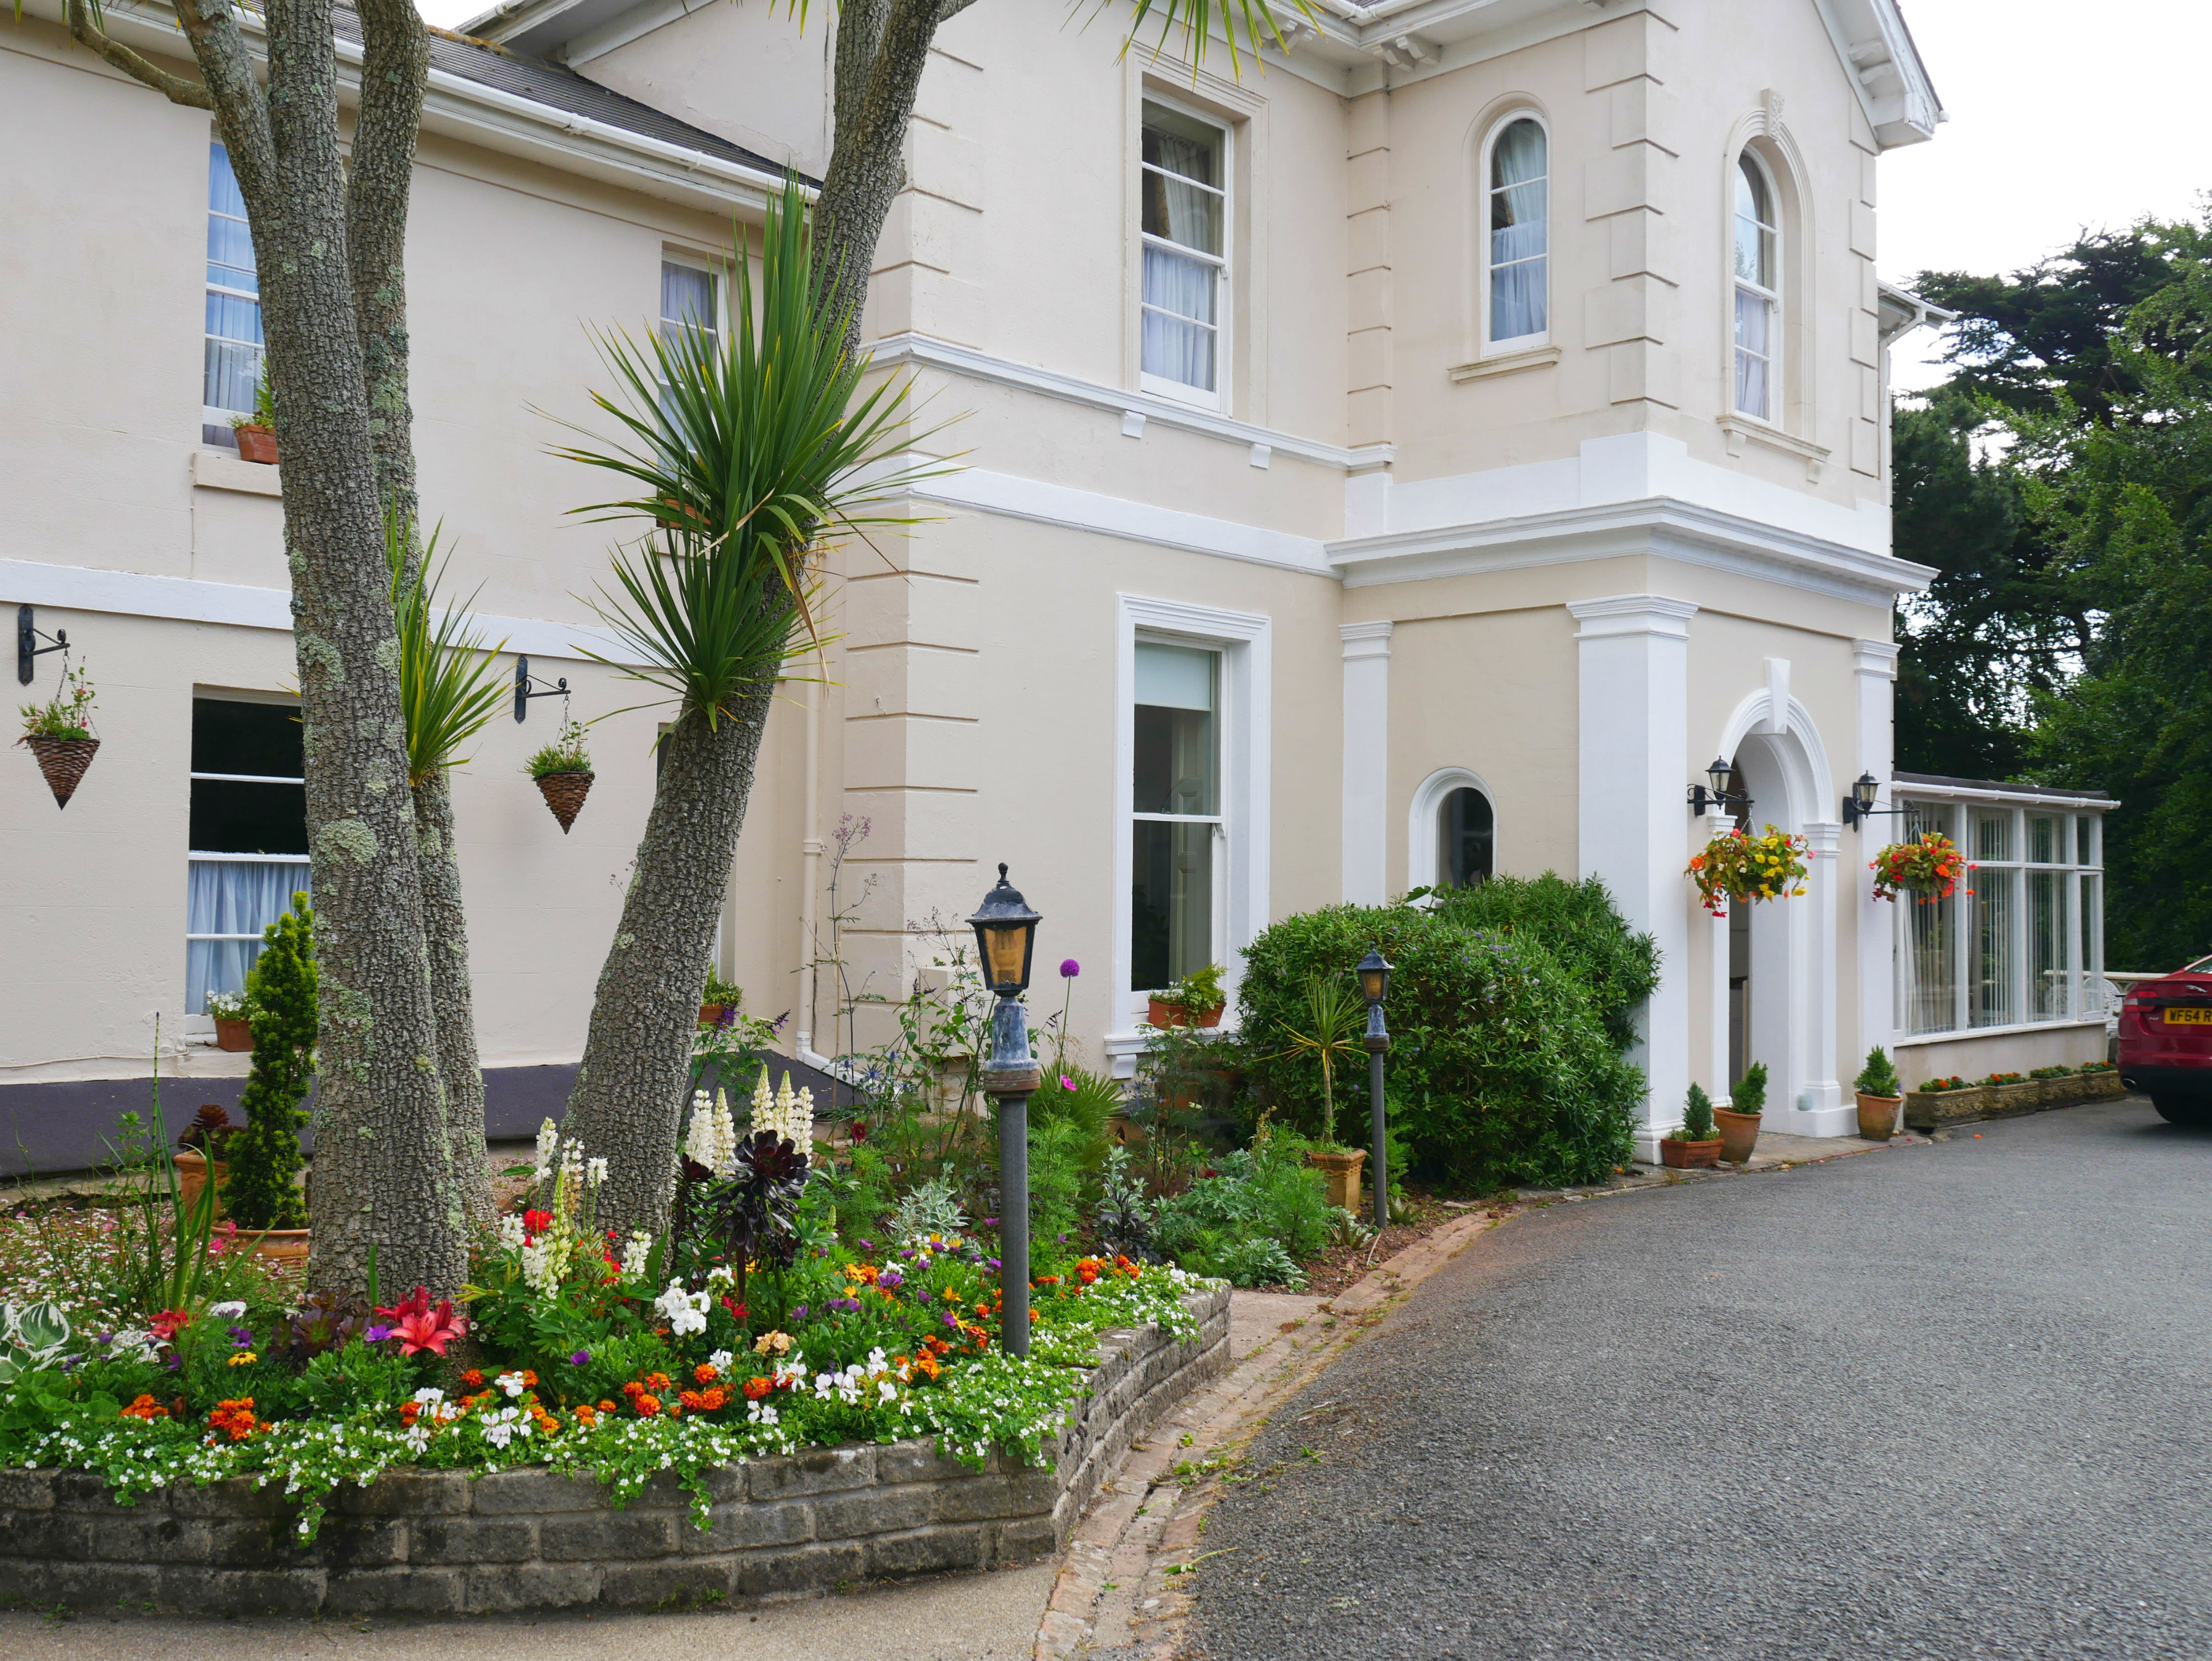 The Muntham Holiday Apartments and Townhouse in Torquay.